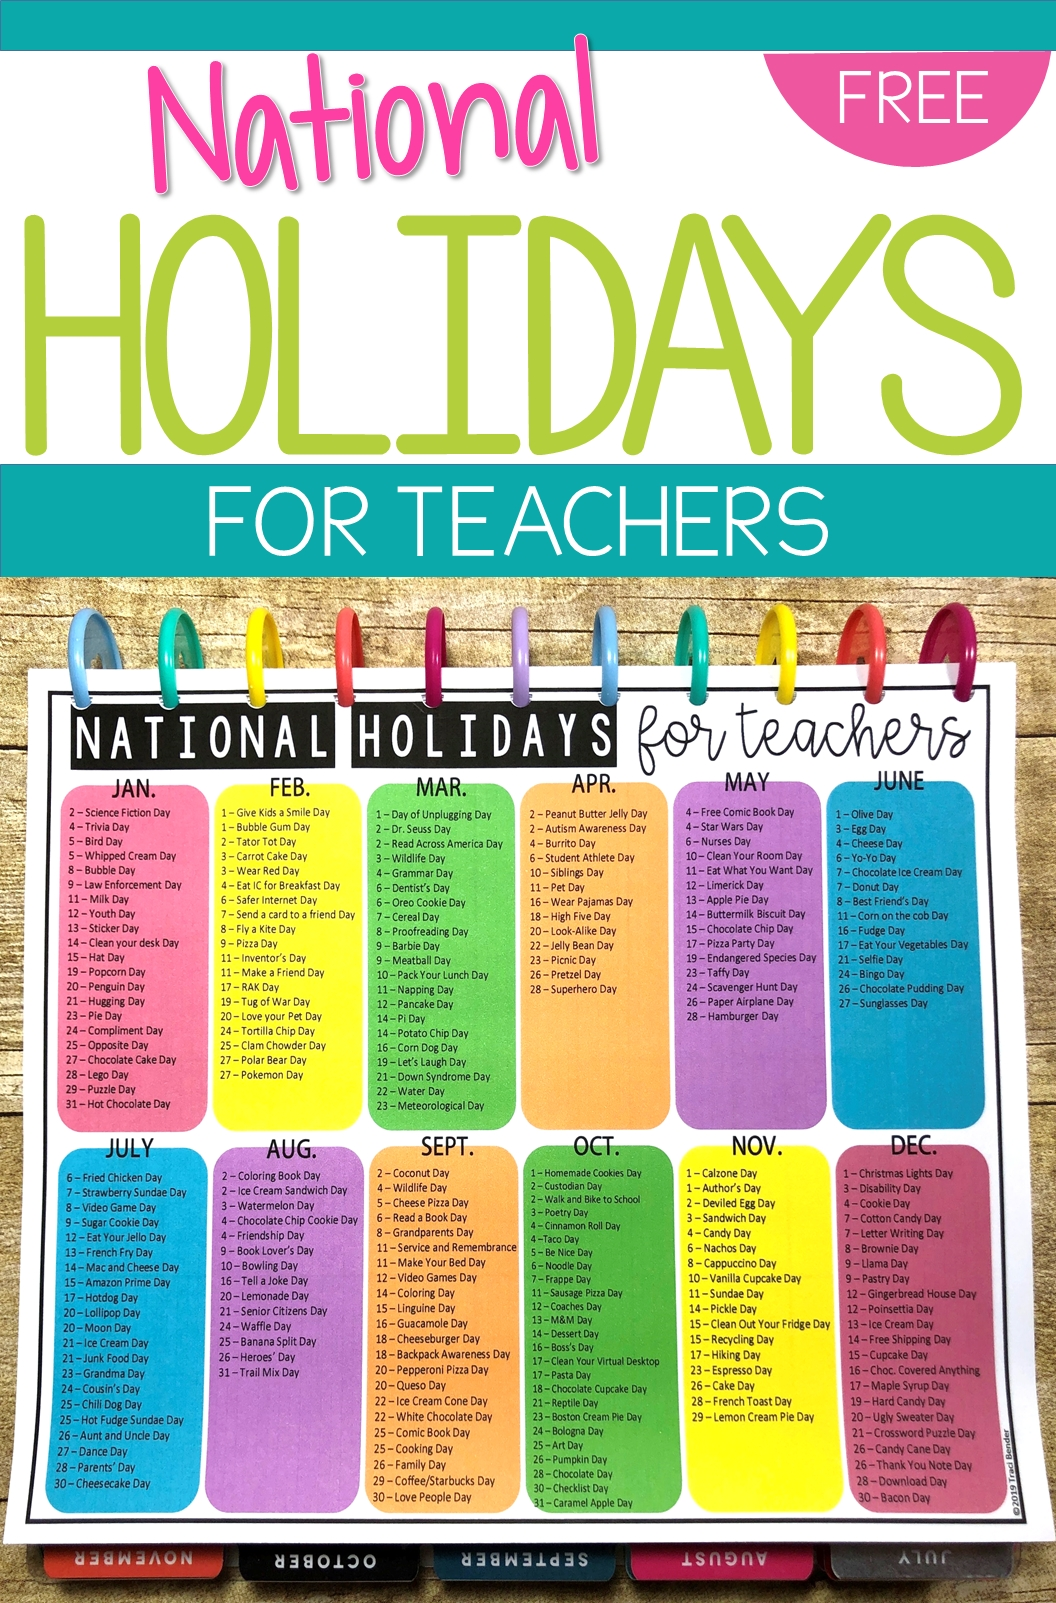 National Holidays Calendar For Teachers (With Images